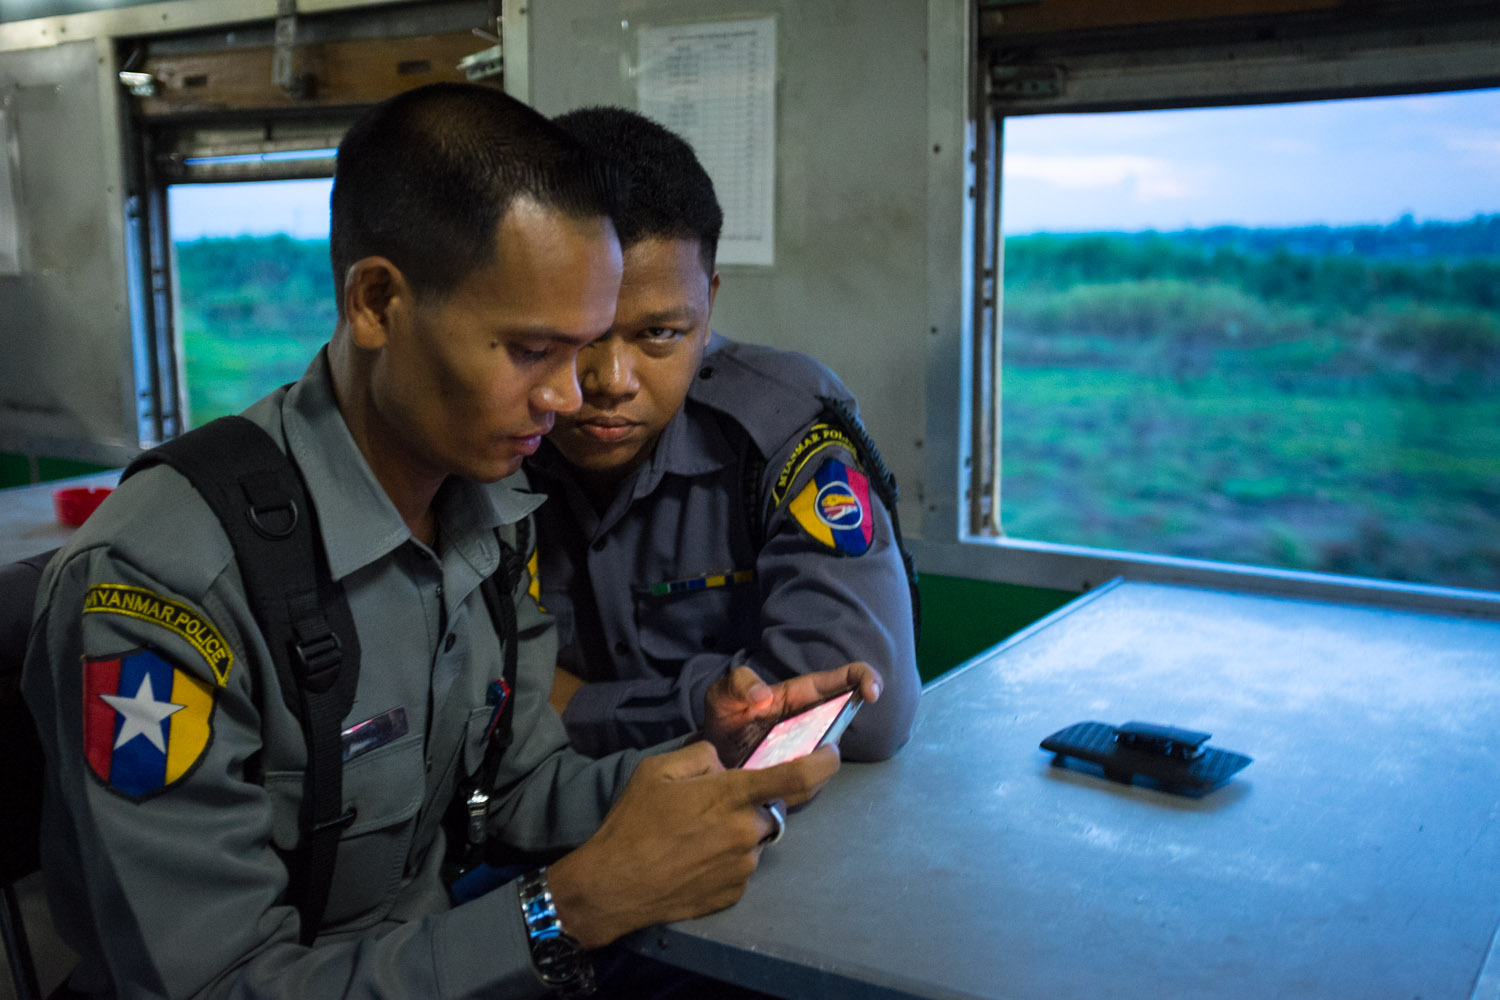 Myanmar Police officers play video games on the Yangon - Mandalay train.